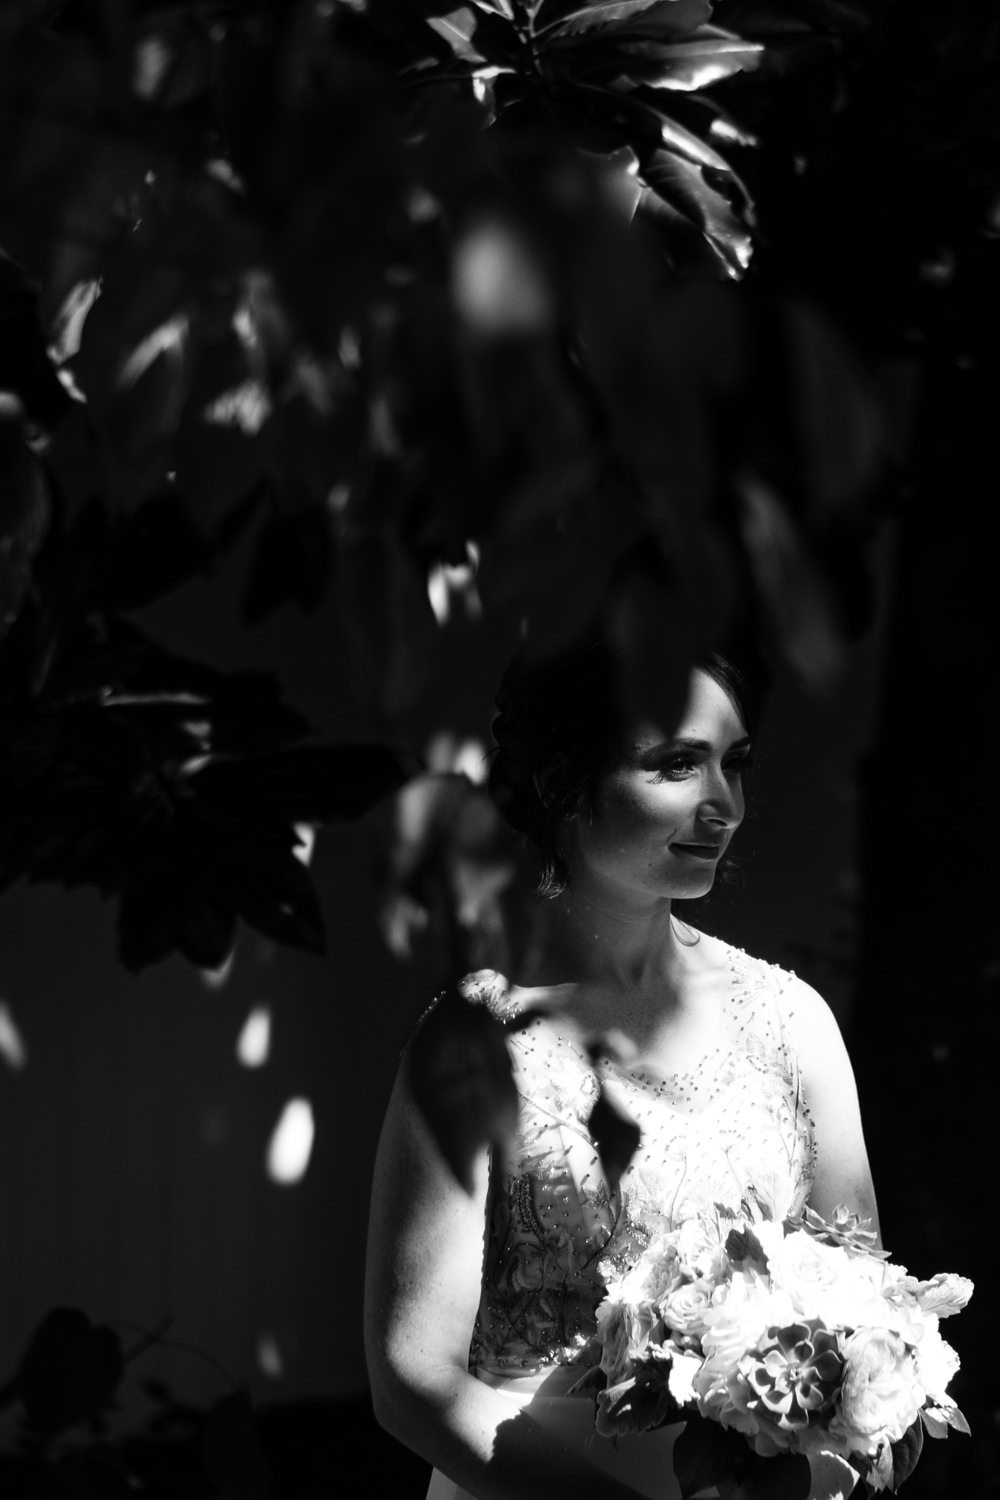 Elina_Dan_Nashville_Wedding-7.jpg